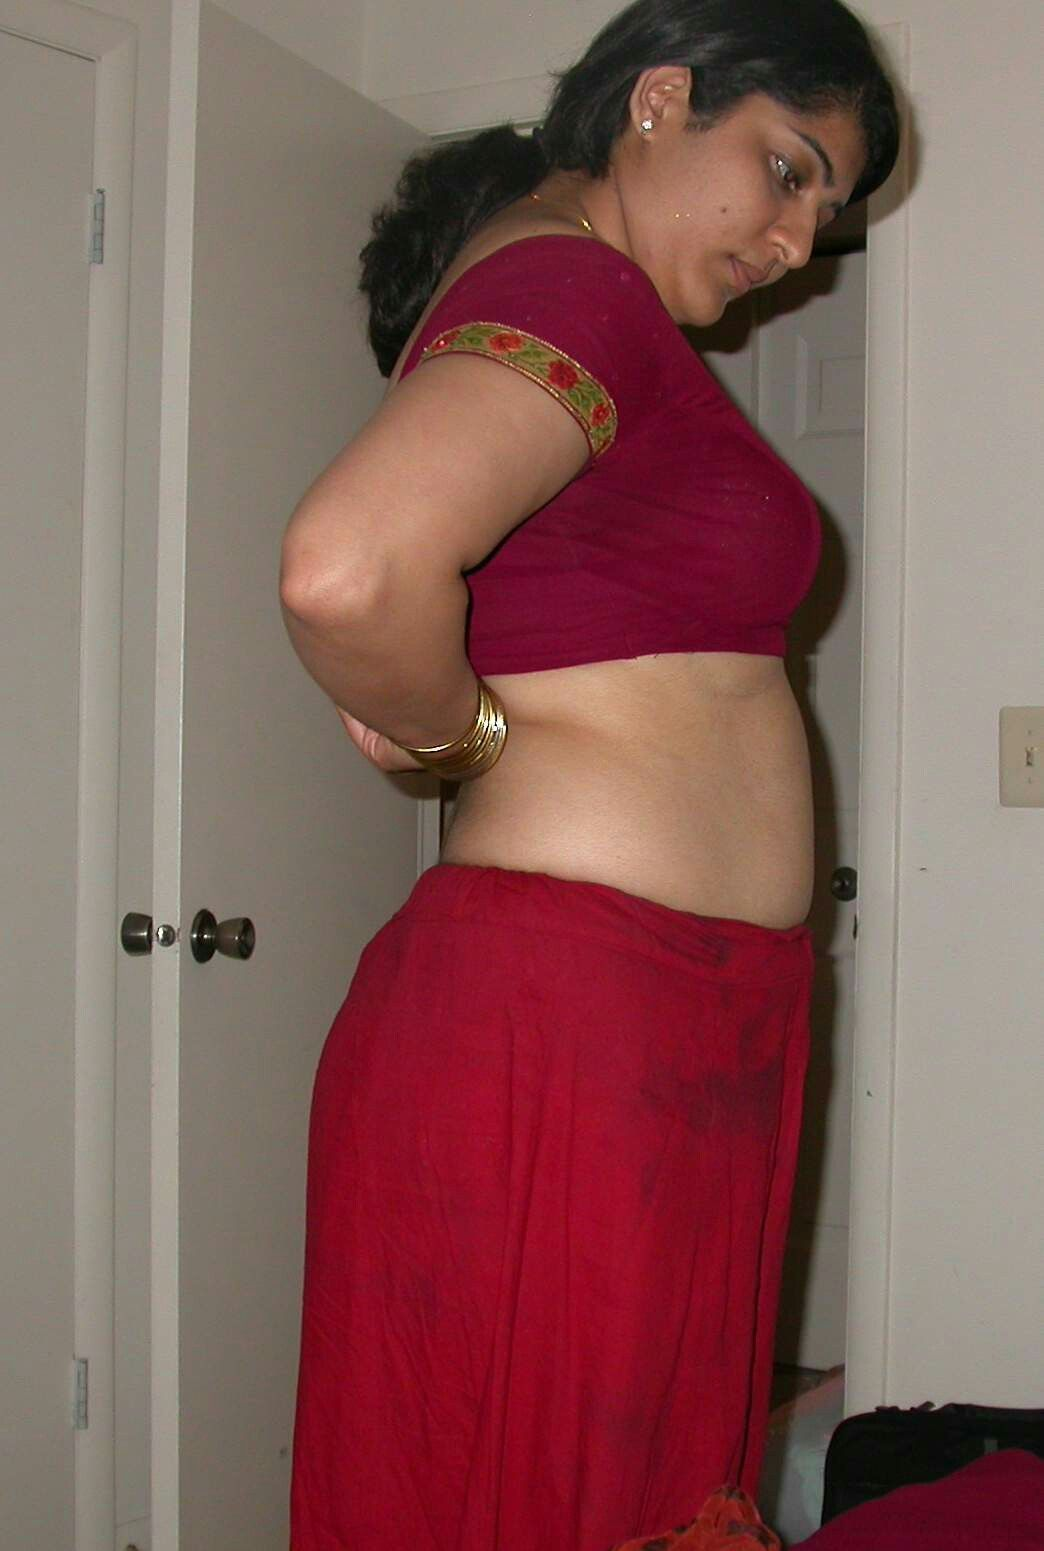 from Corey nude punjabi desi girls